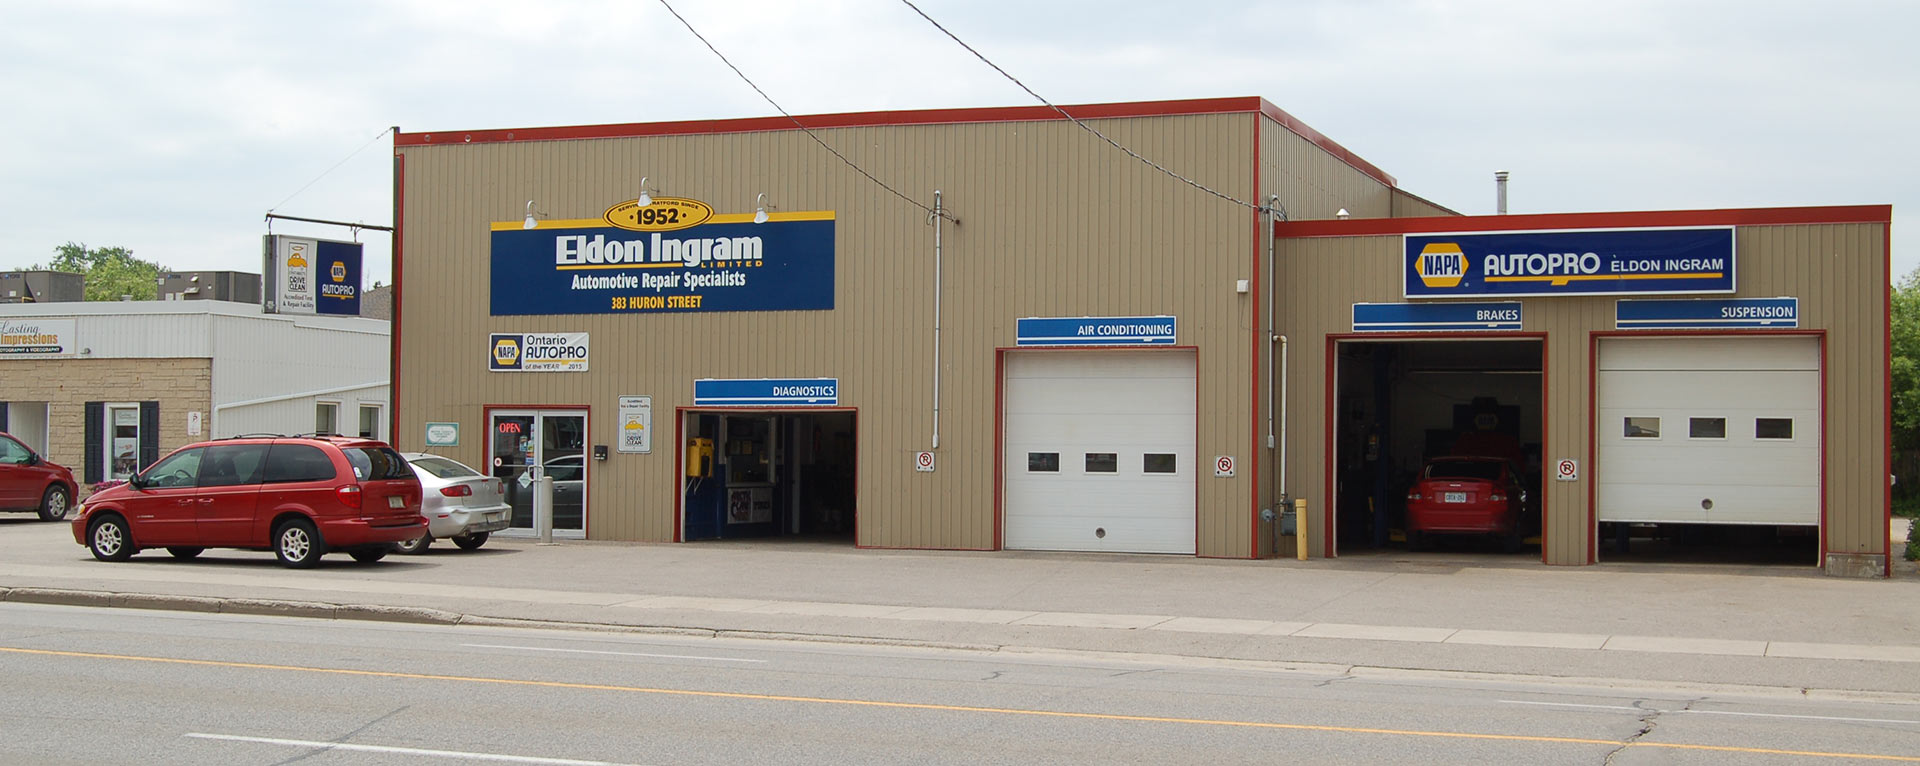 Eldon Ingram Autopro | Car service, tires, mechanic and auto